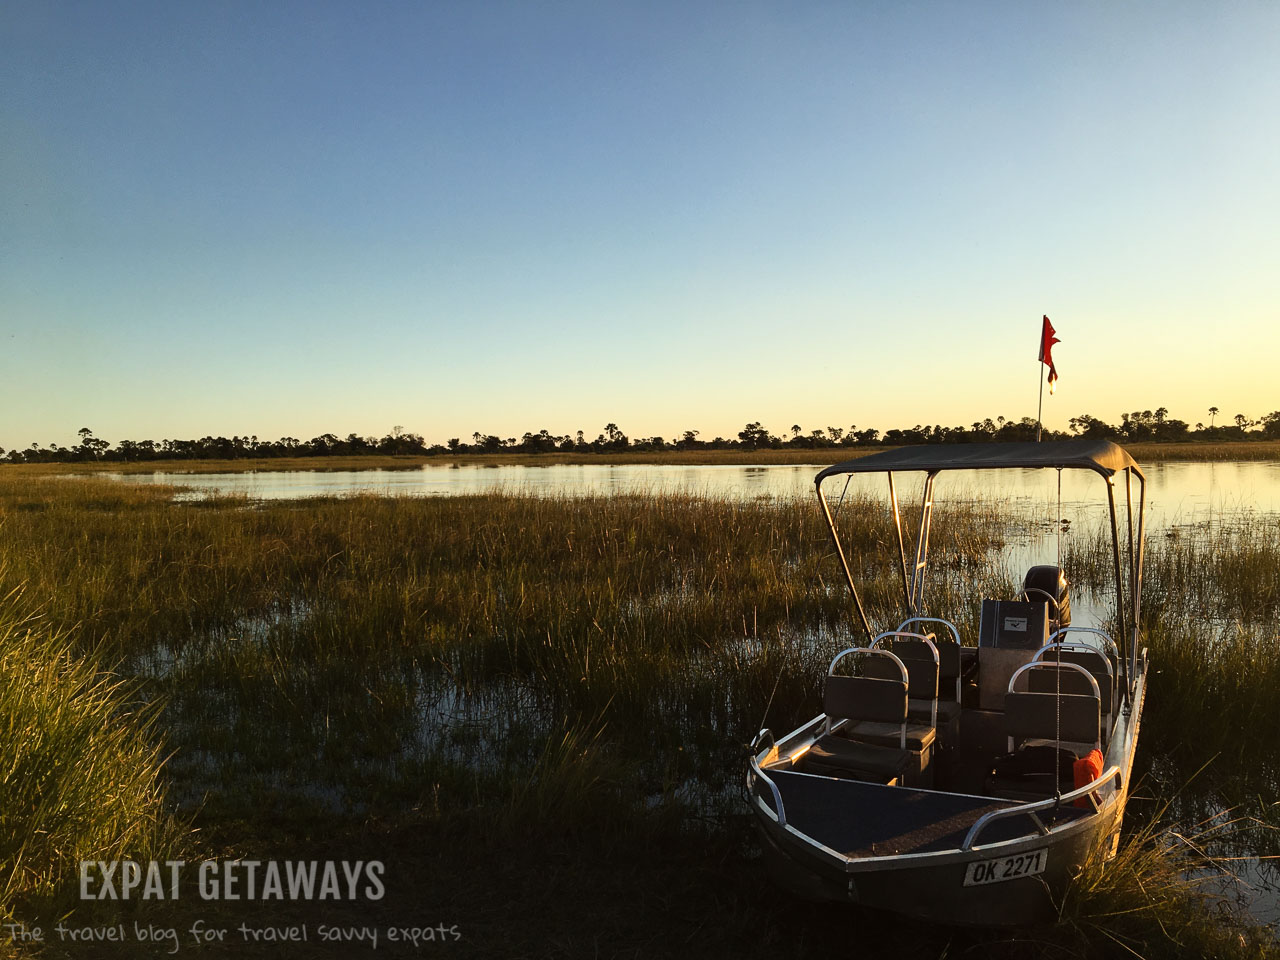 At Gunns Camp you mostly explore the Okavango Delta by safari boat. The best game viewing is at sunrise and sunset. Expat Getaways 2 Weeks Southern Africa, Botswana.